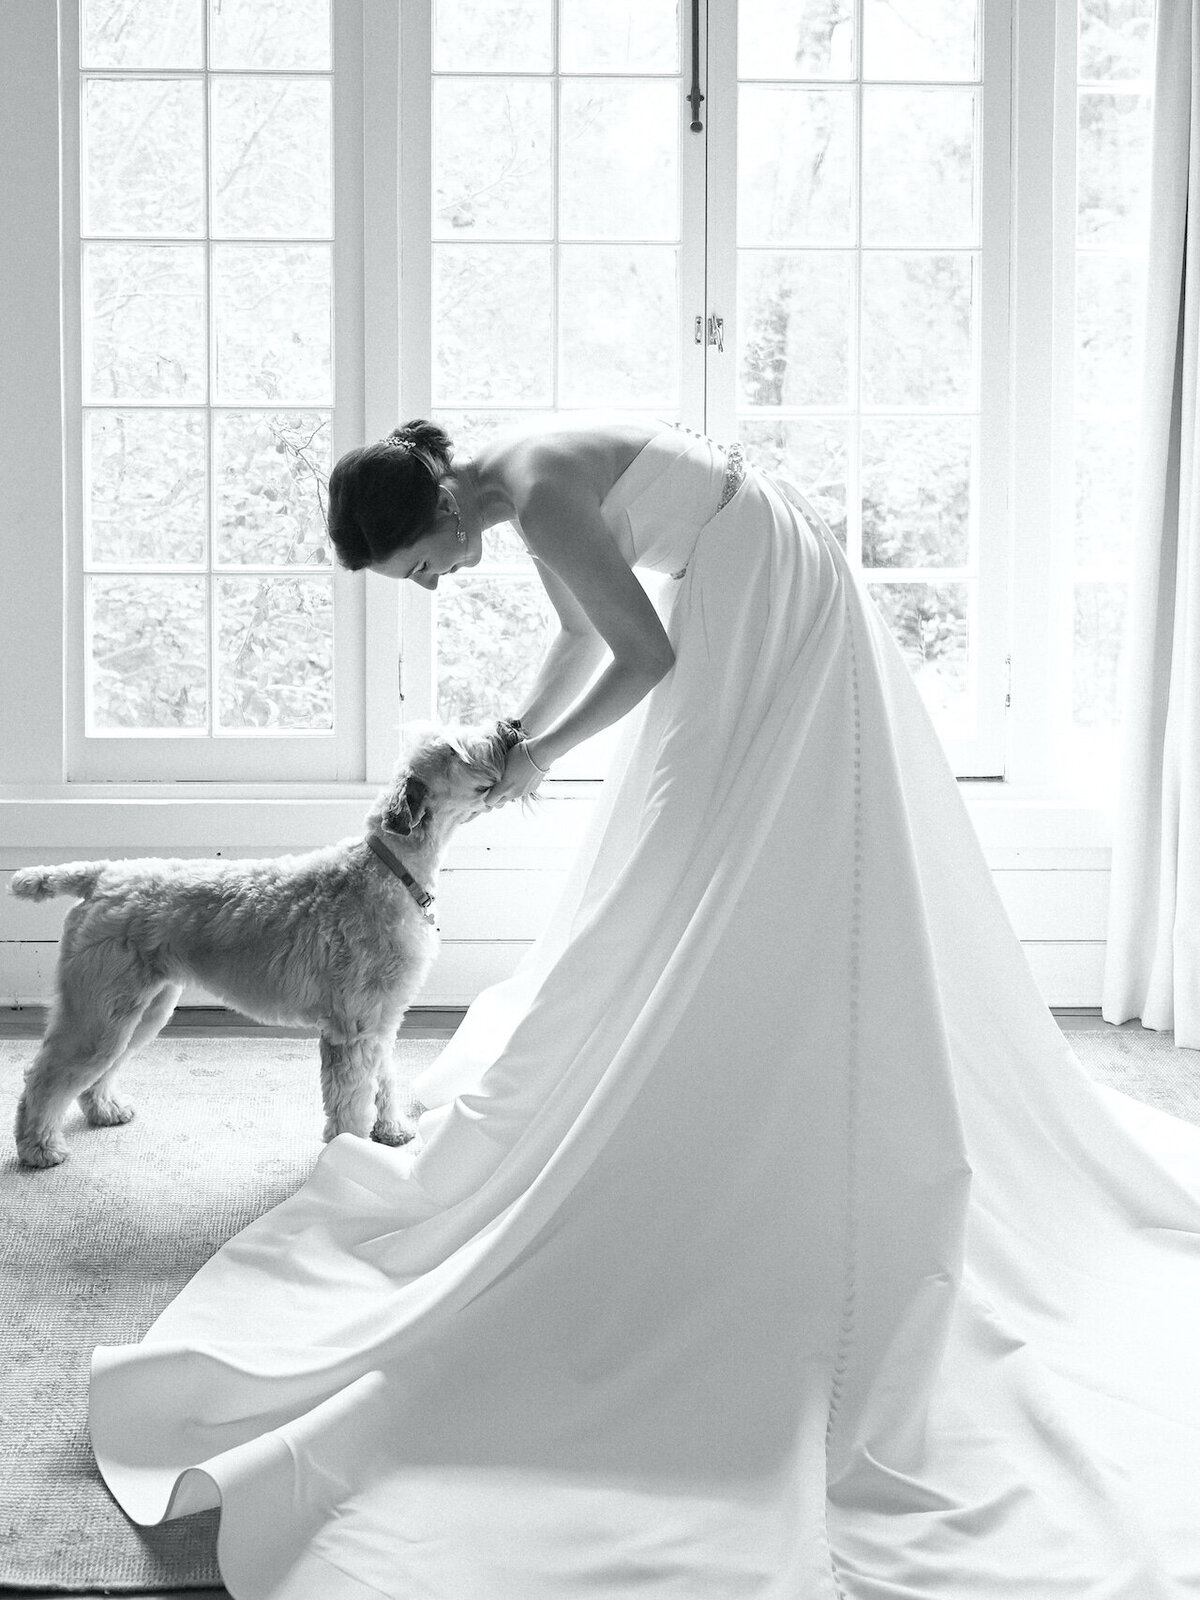 Classic Black and White Wedding Photographs Robert Aveau for © Bonnie Sen Photography